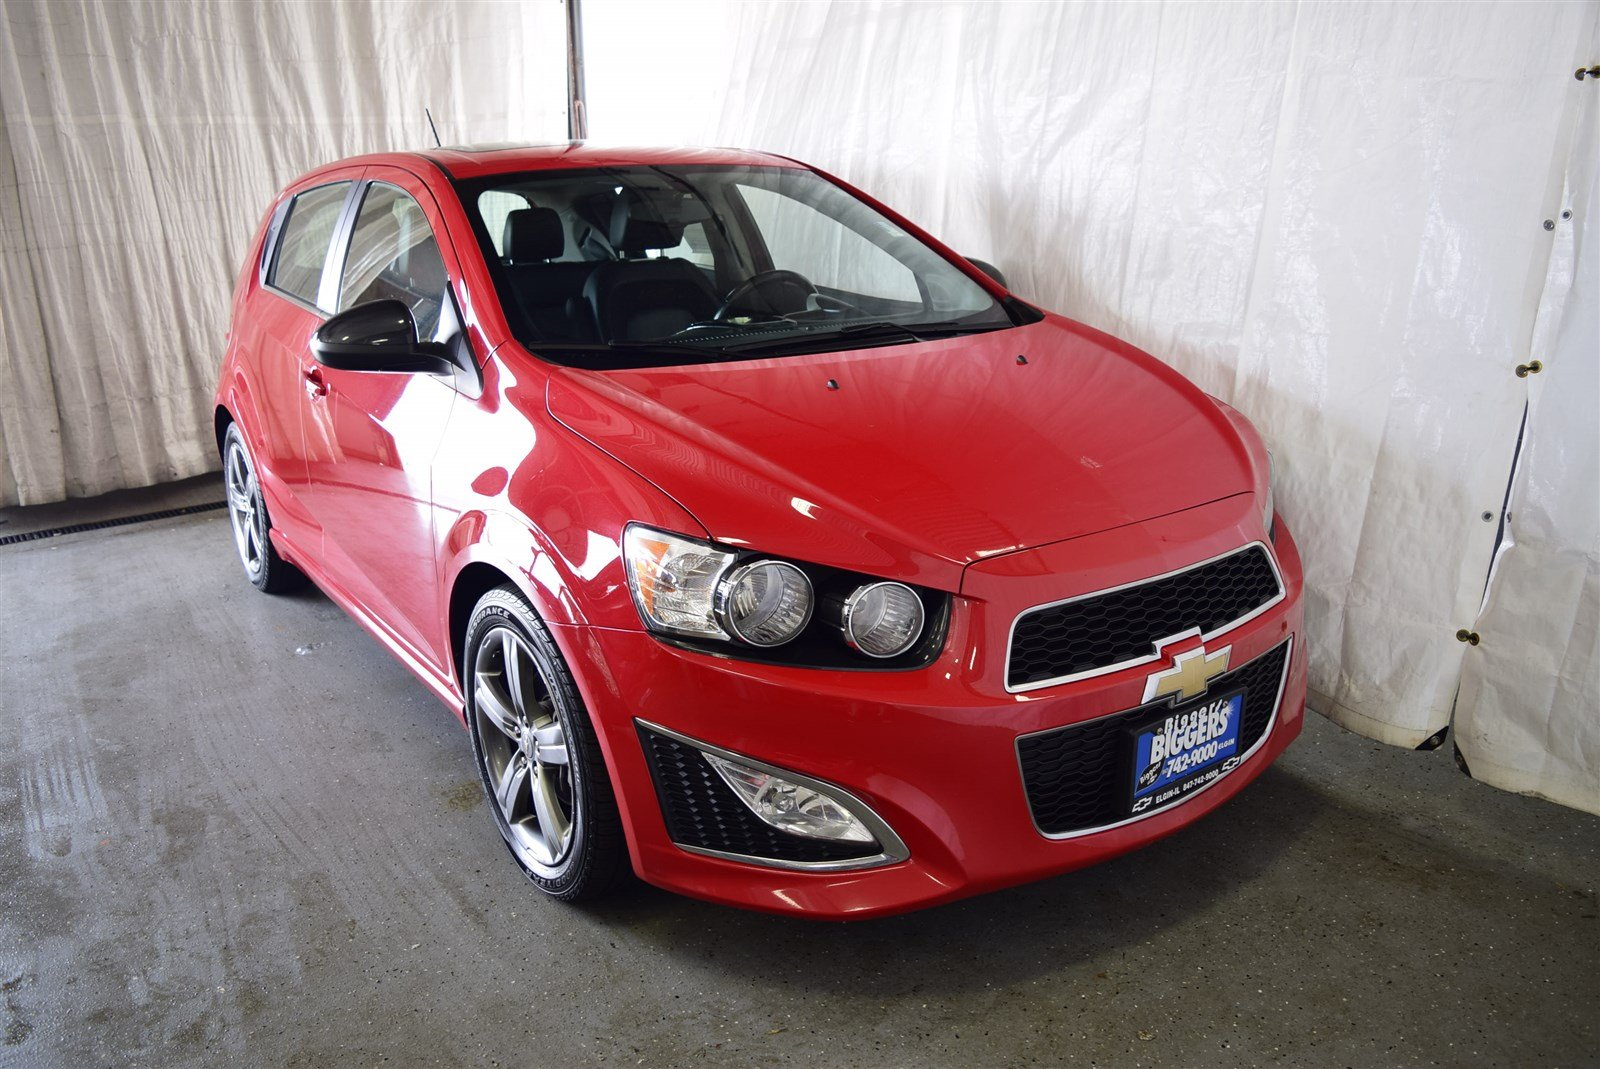 Chevrolet Sonic Owners Manual: License Plate Lamp